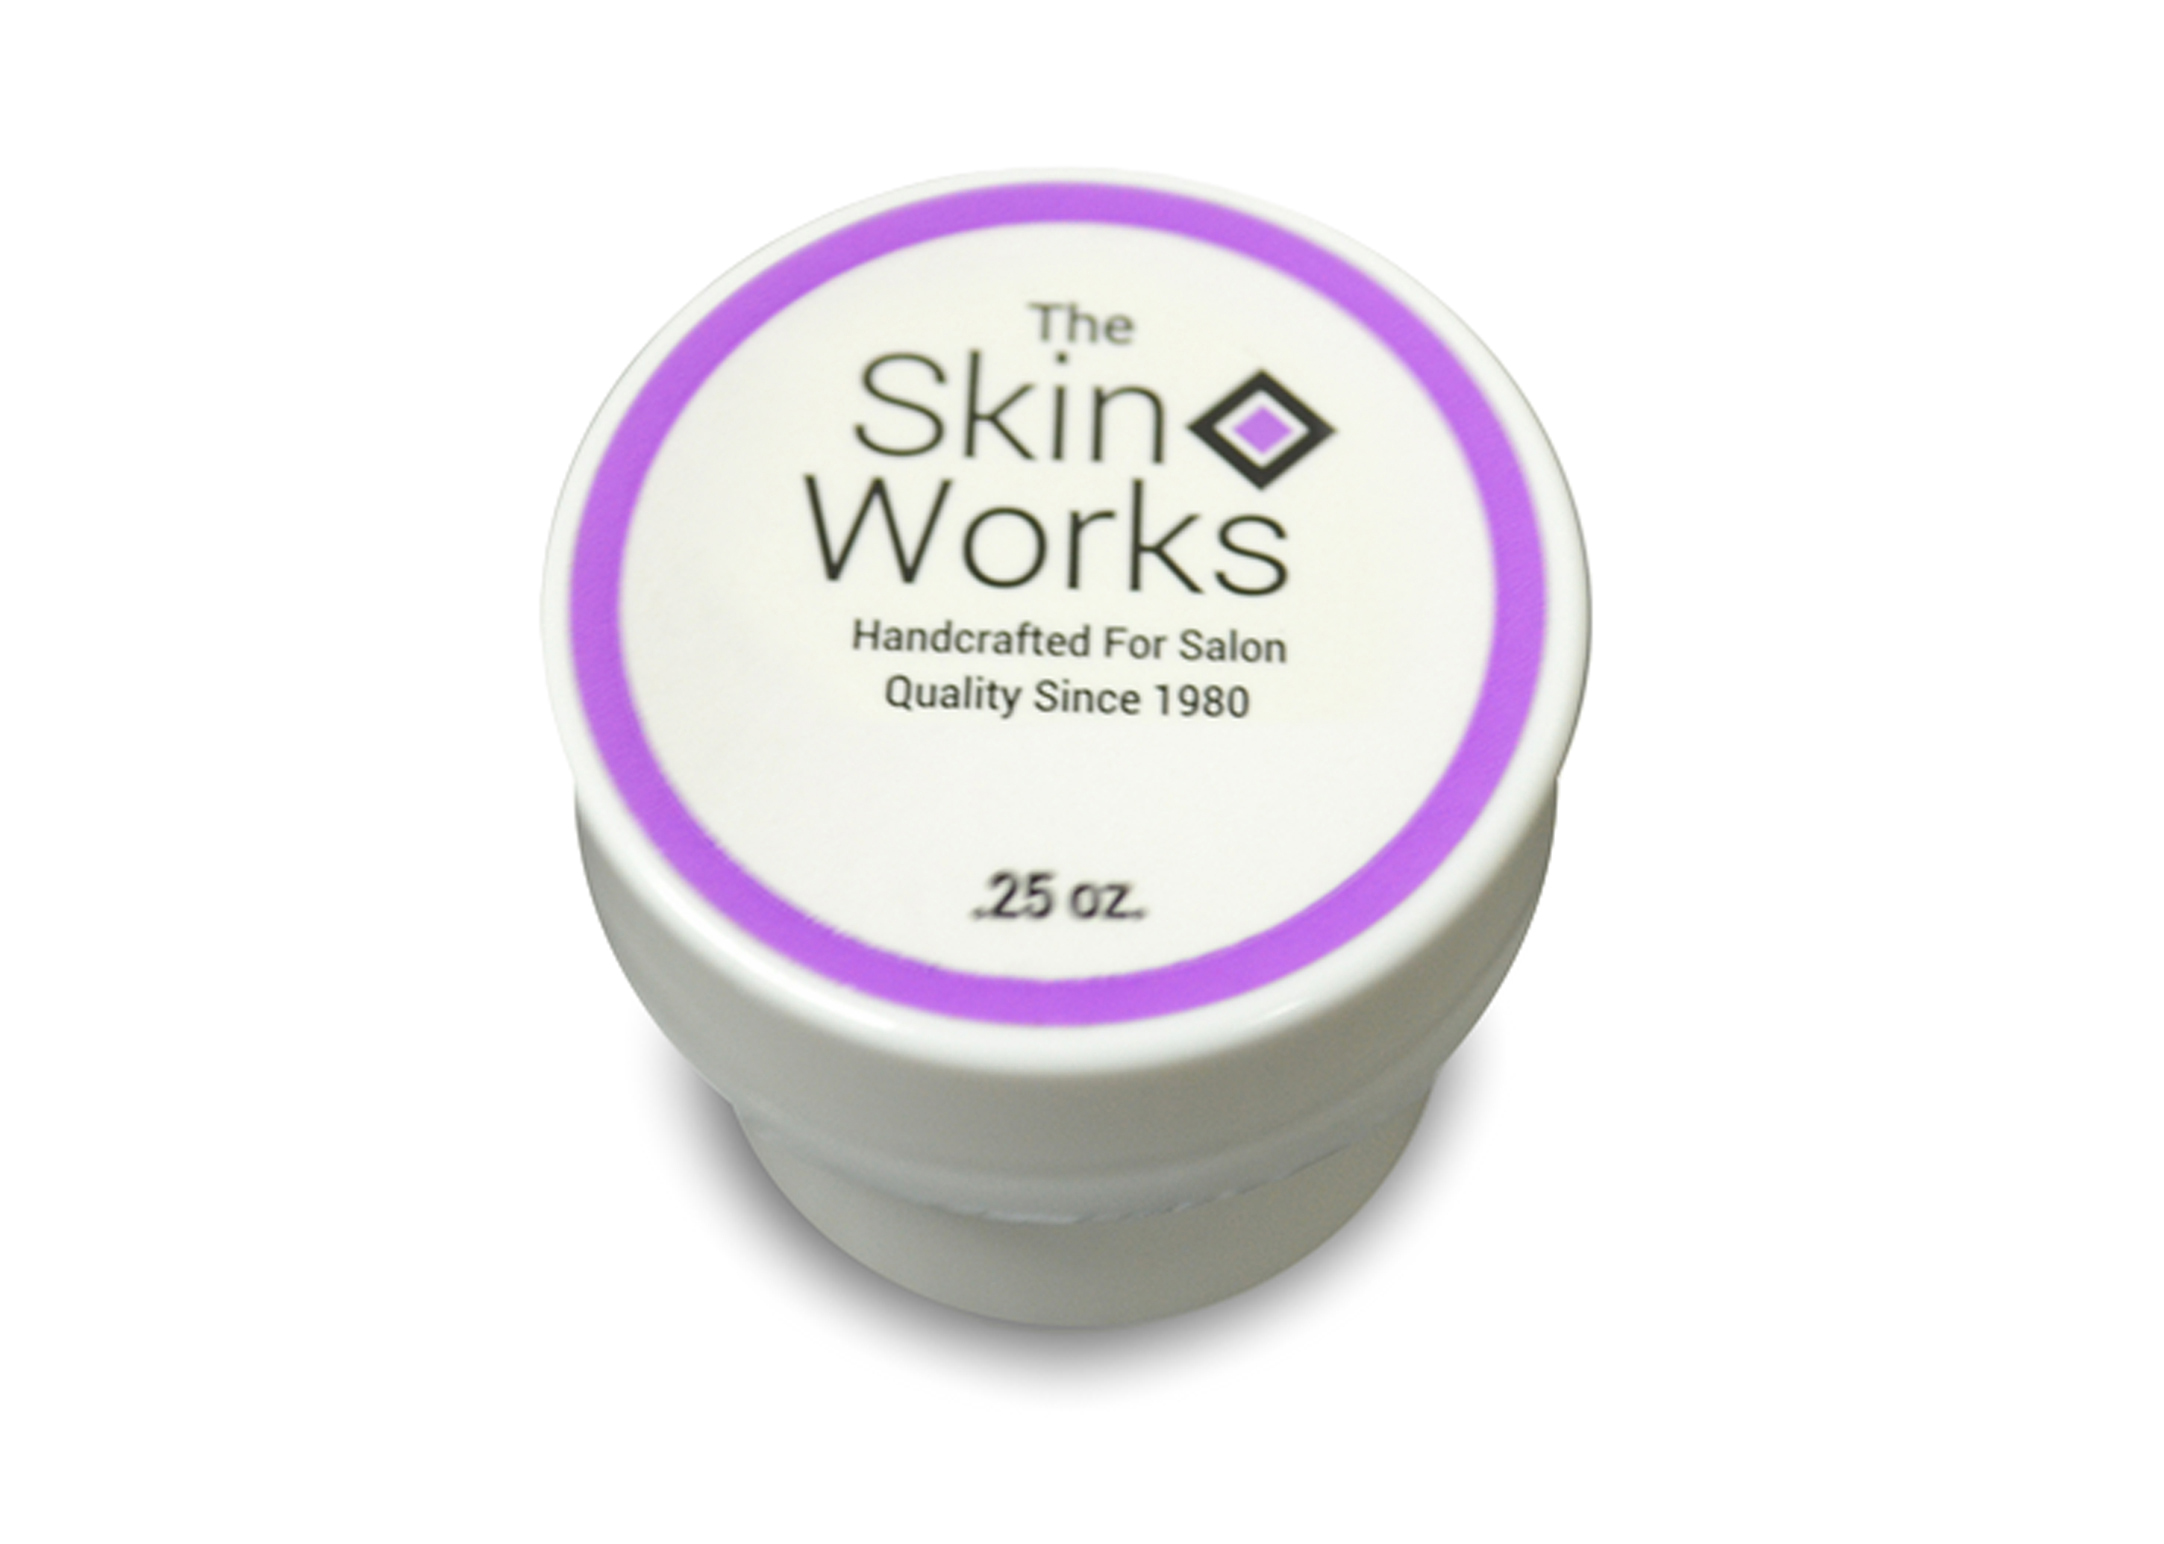 Coat Handler Skin Works Soothing Creme For Dogs And Cats